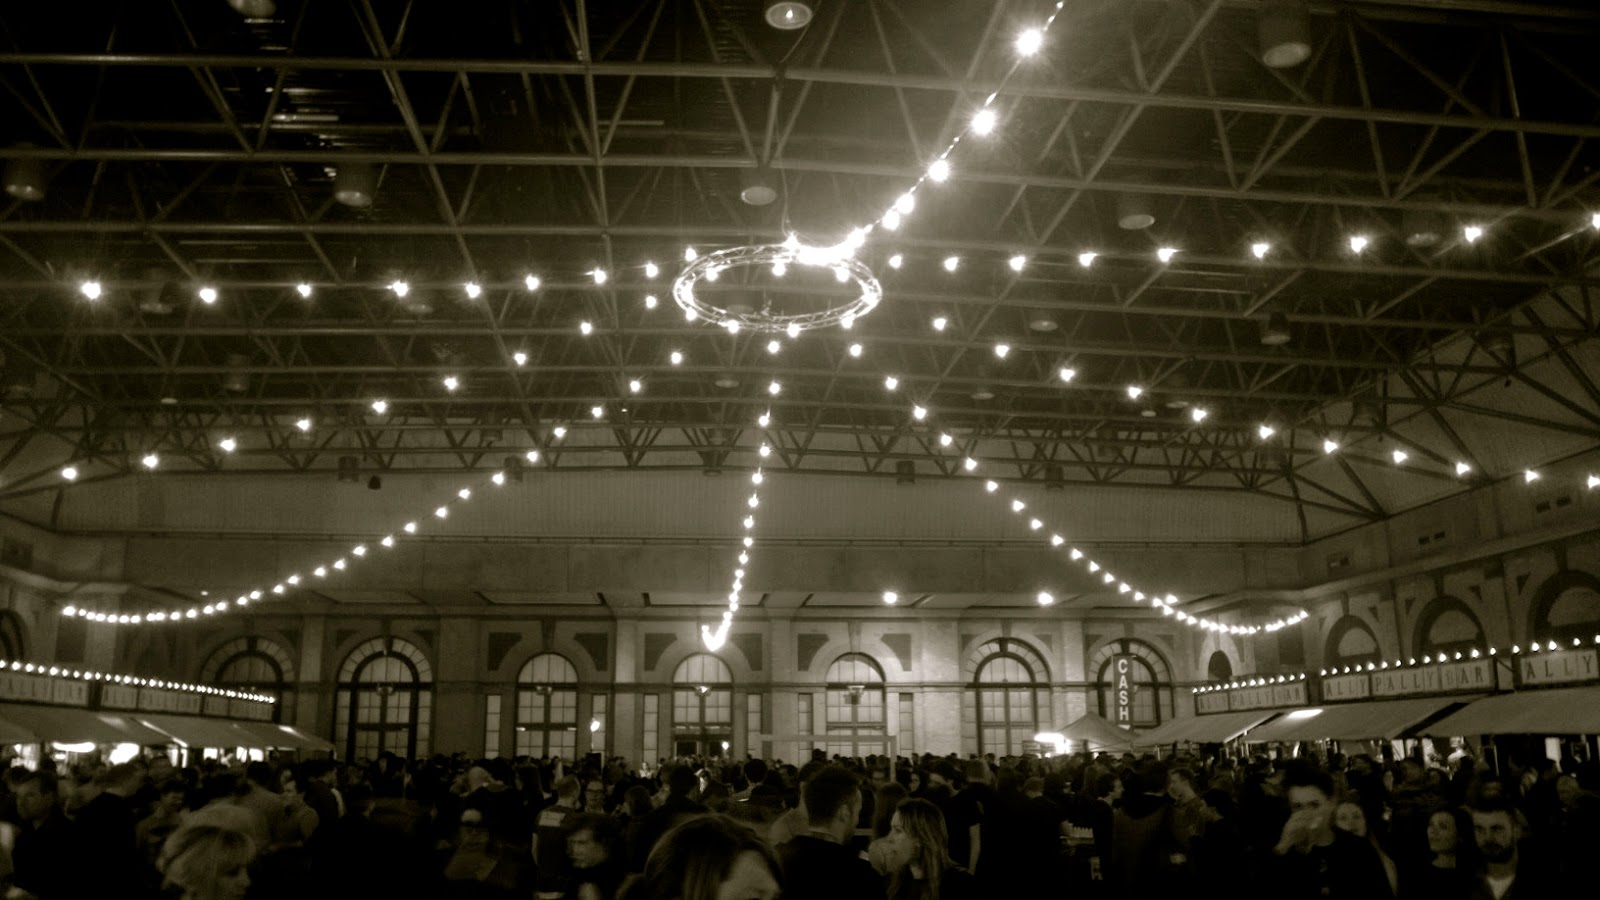 The food hall at Alexandra Palace with lights on the ceiling